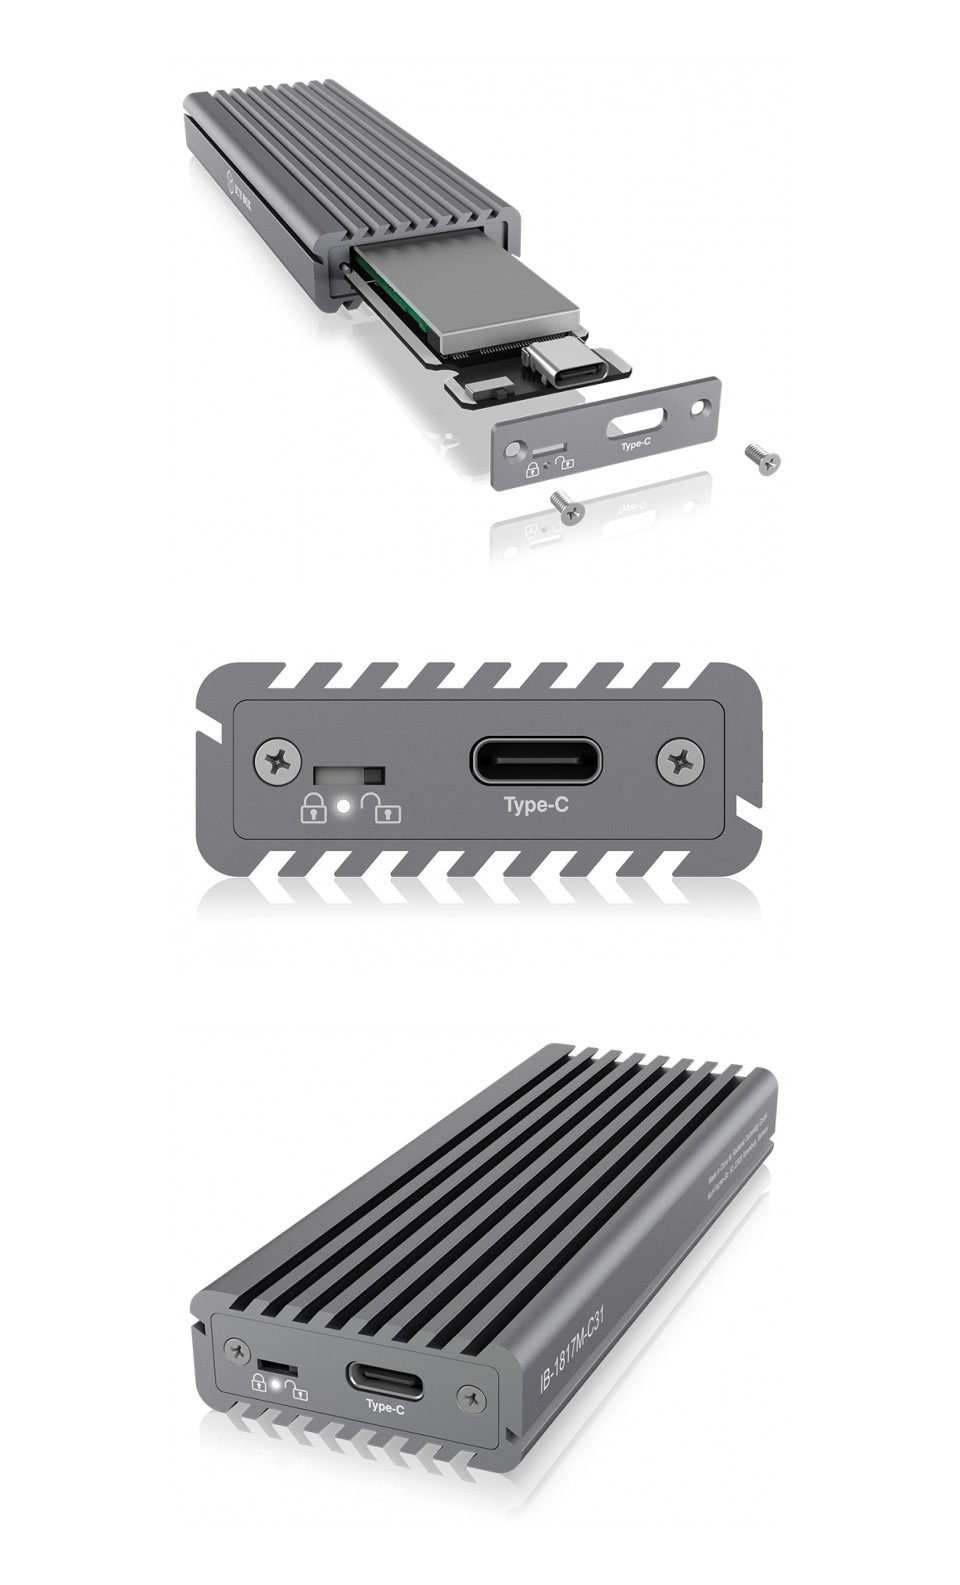 ICY BOX USB3.1 Type C NVME M.2 Enclosure product